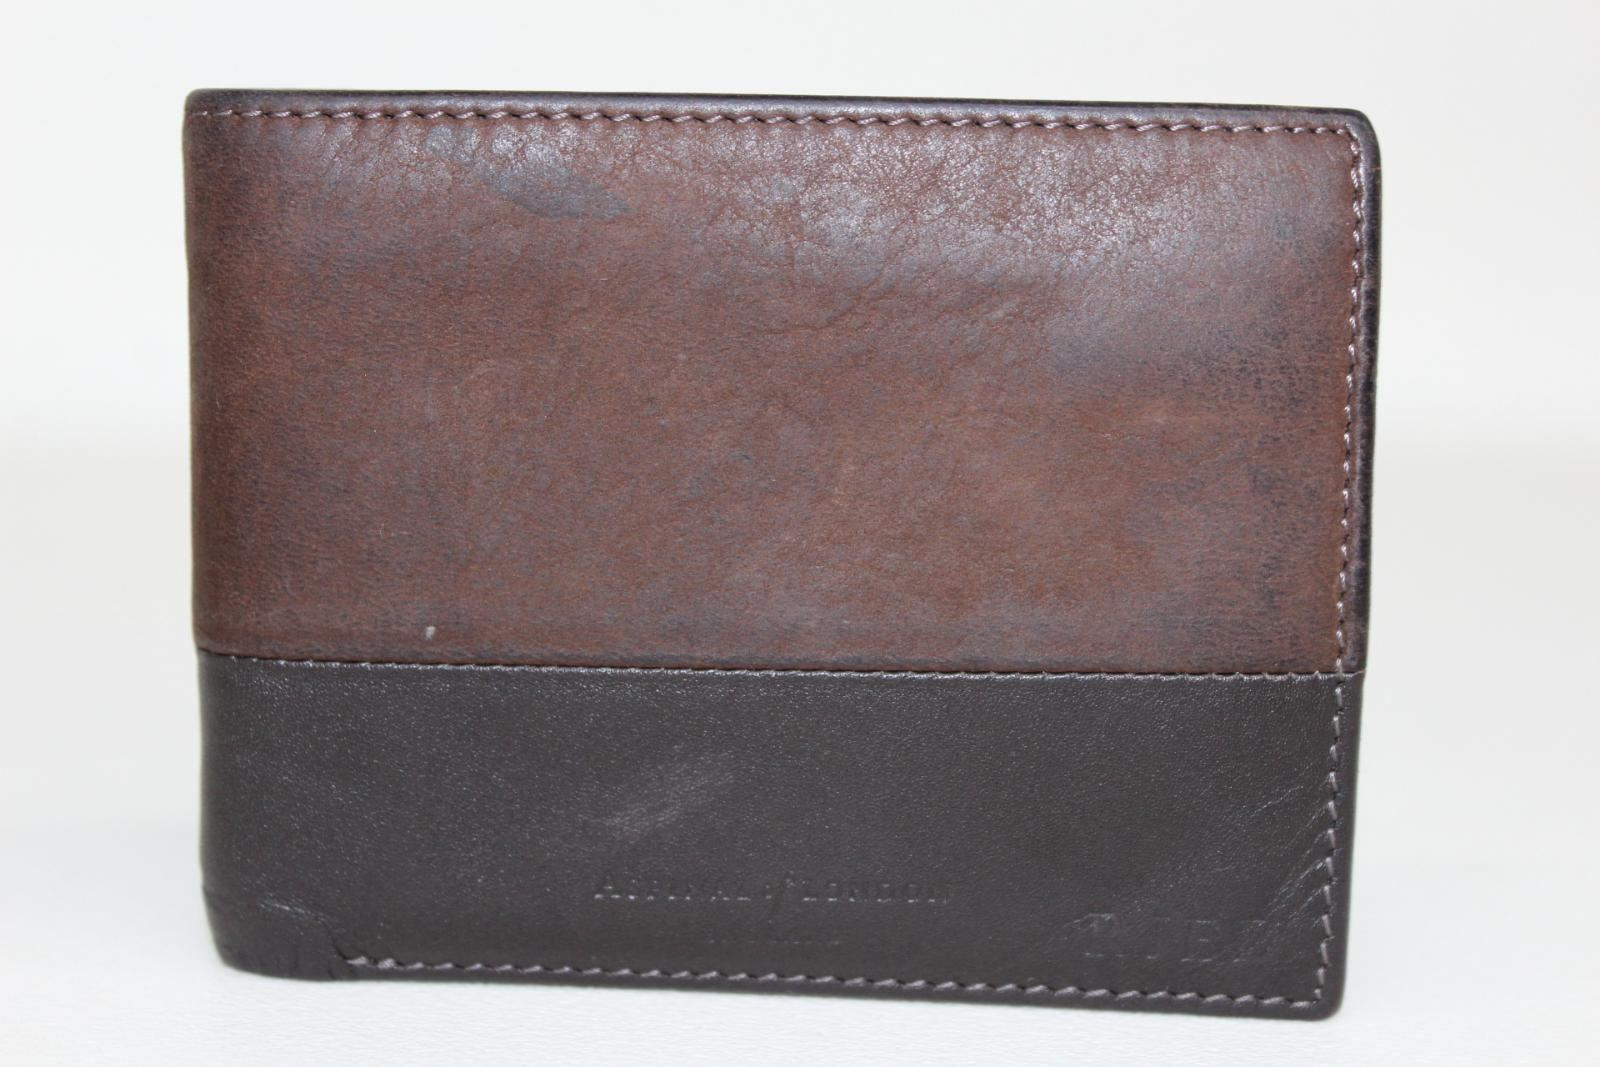 ASPINAL-OF-LONDON-Calf-Smooth-Black-amp-Espresso-Suede-8-Card-Billfold-Wallet